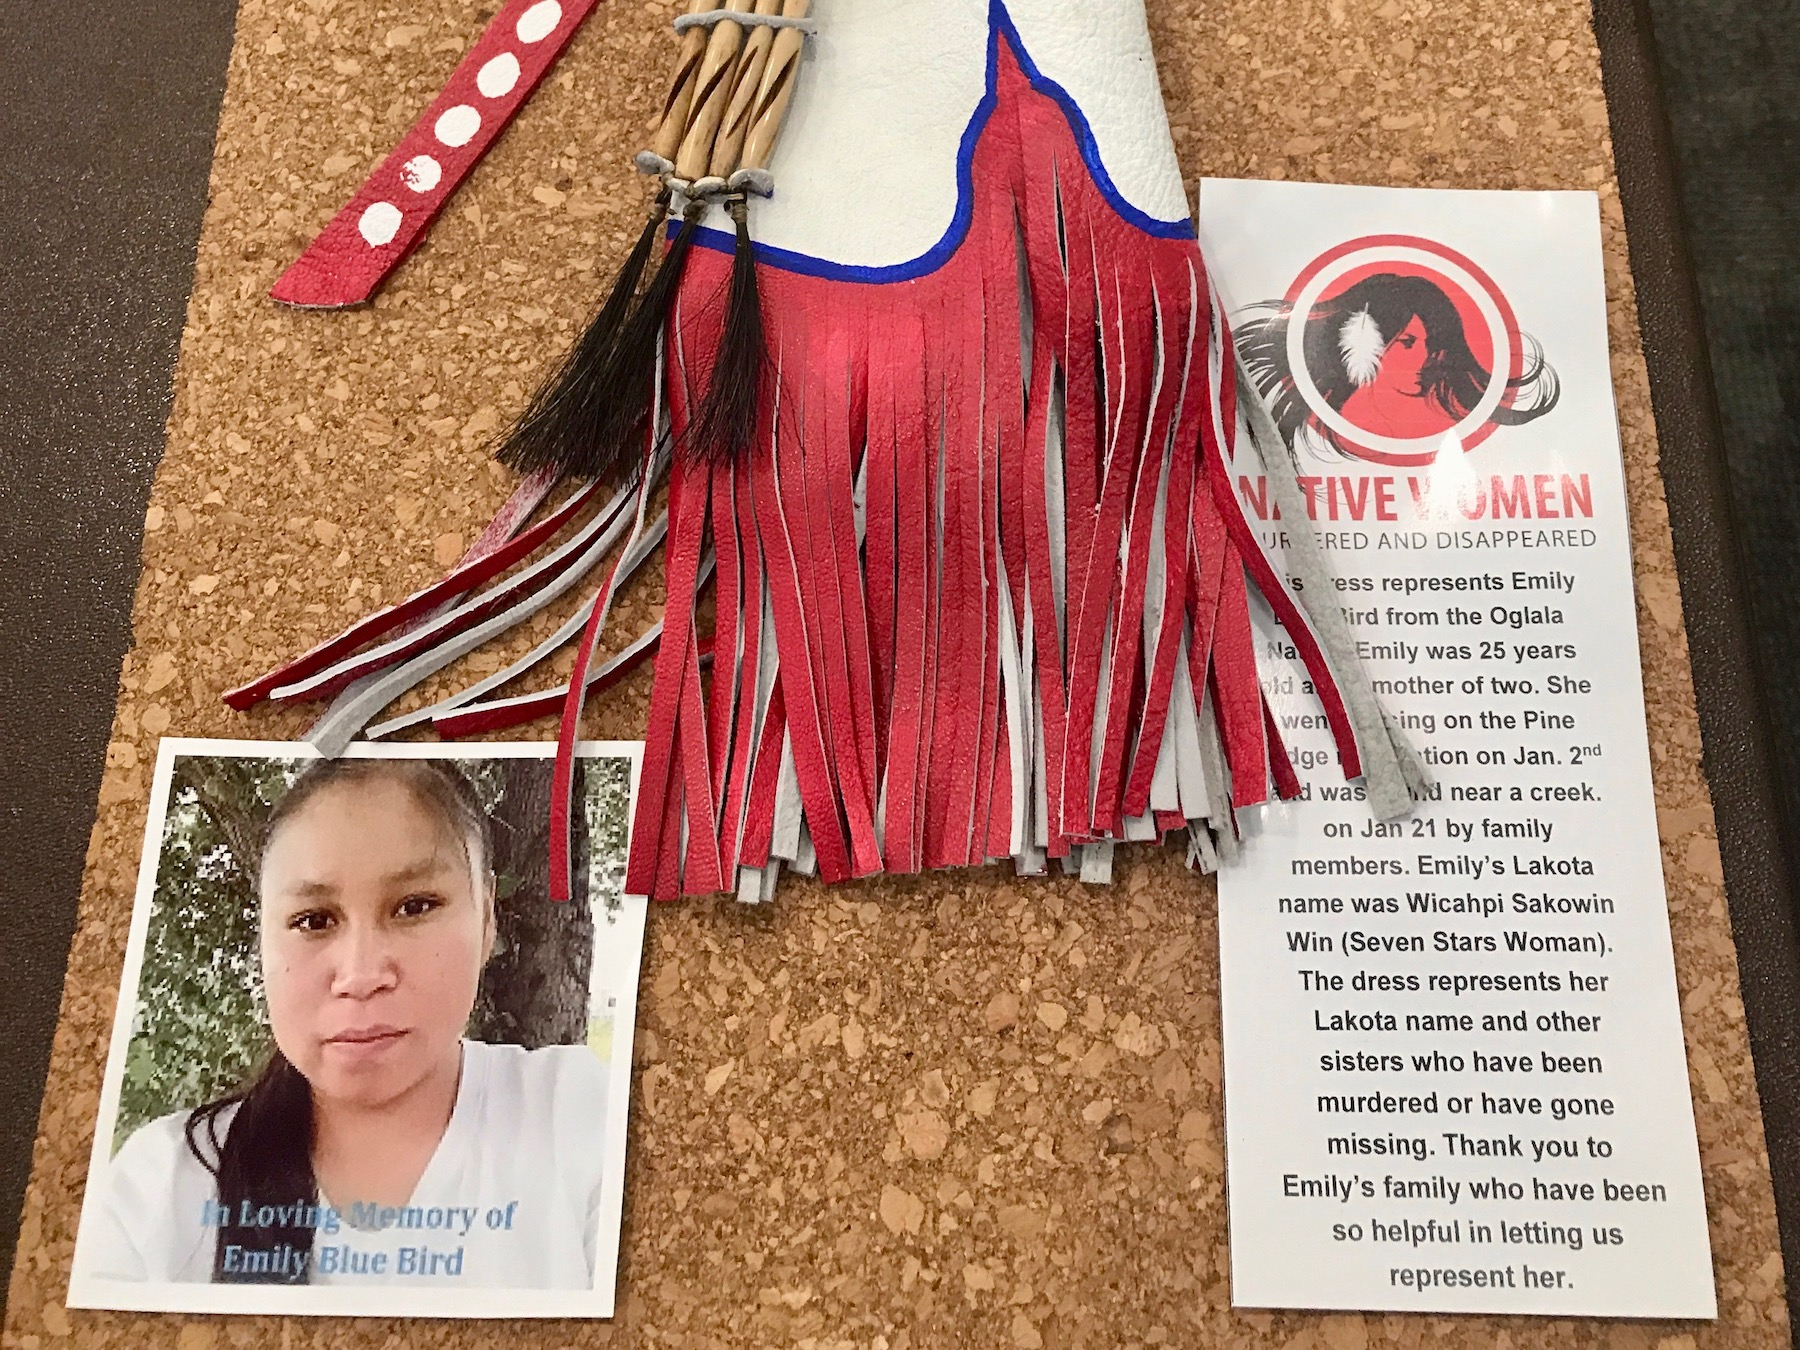 Report confirms Native women suffer from high rate of homicide in United States